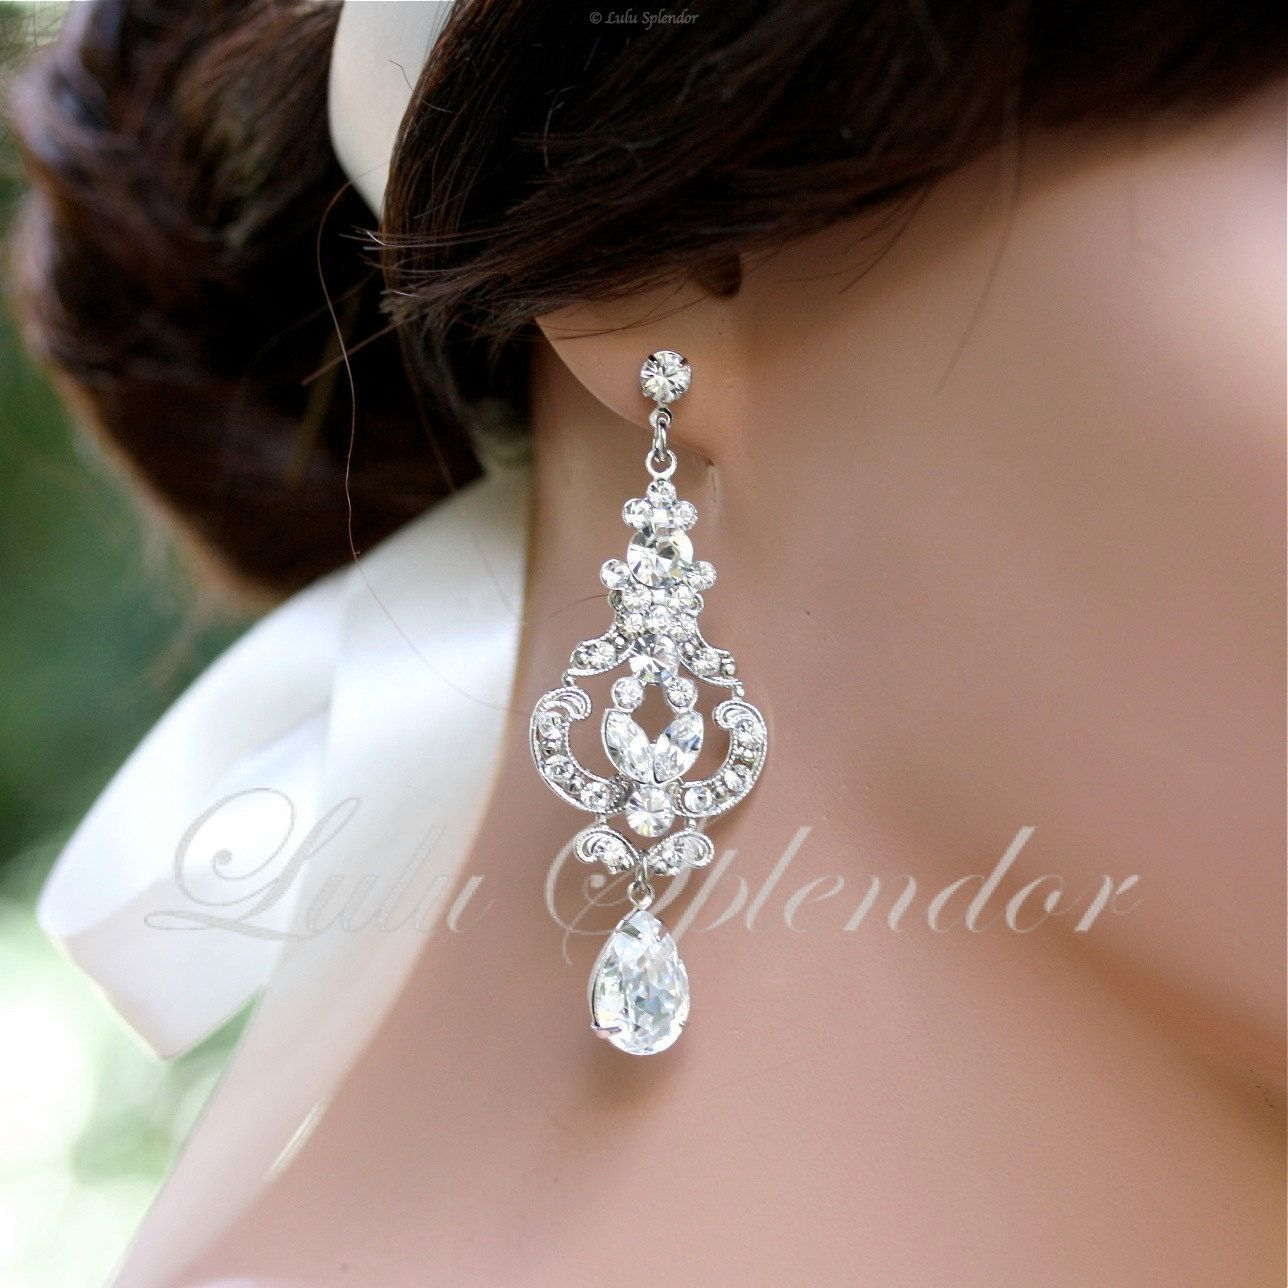 Vintage Bridal Earrings Chandelier Wedding earrings ...